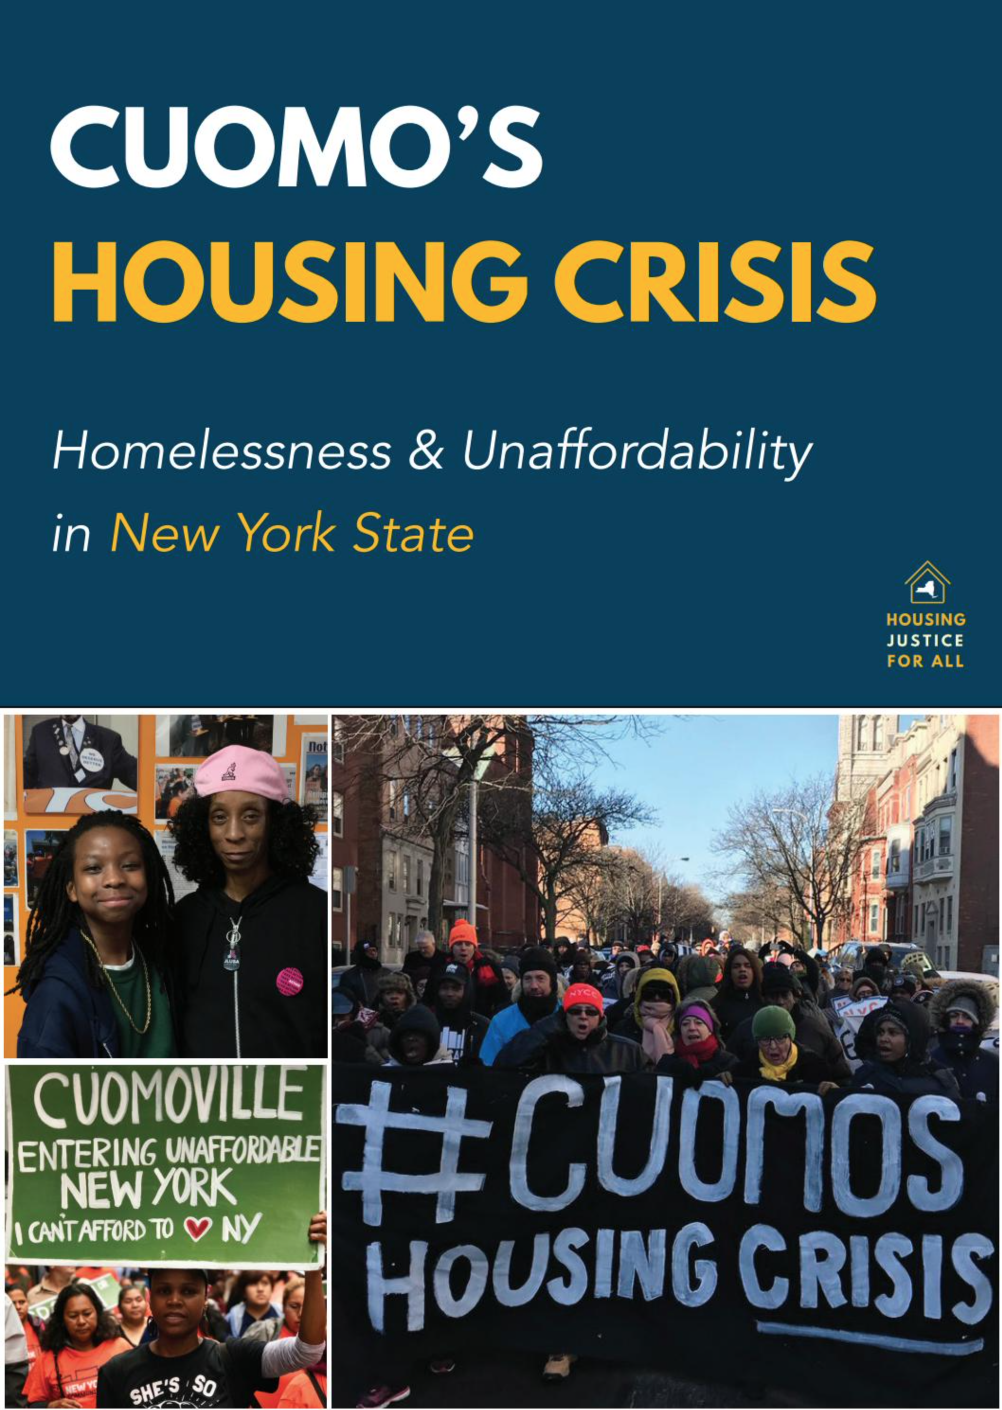 Cuomo's Housing Crisis: Homelessness & Unaffordability in New York State